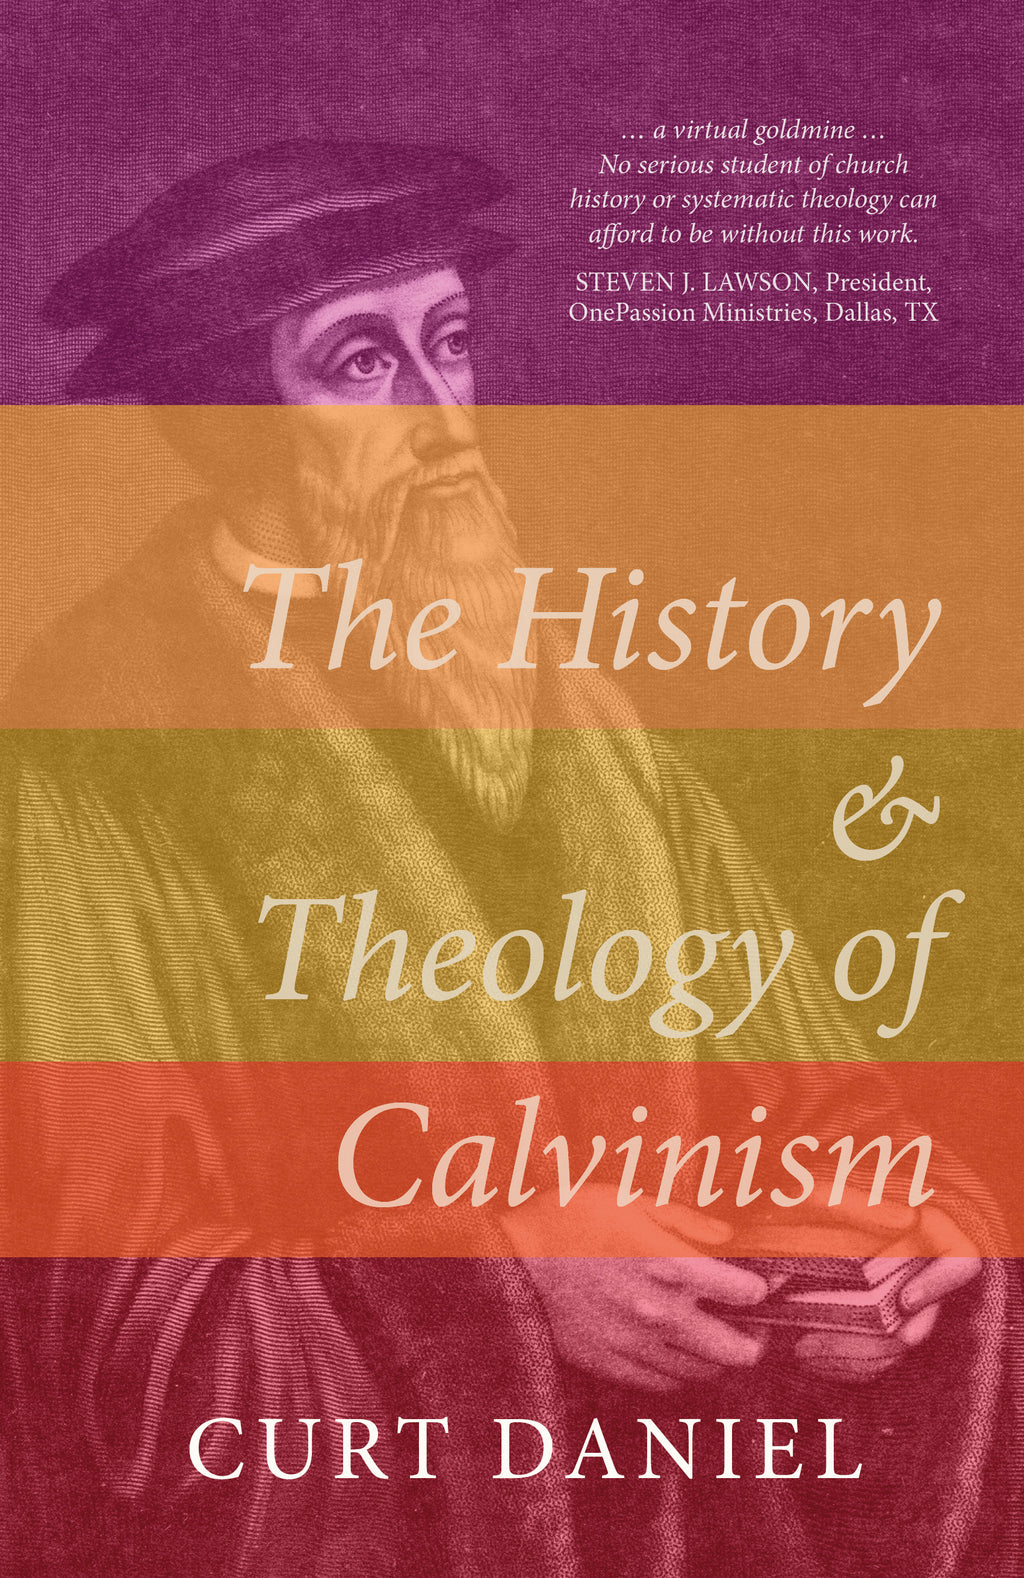 The History and Theology of Calvinism